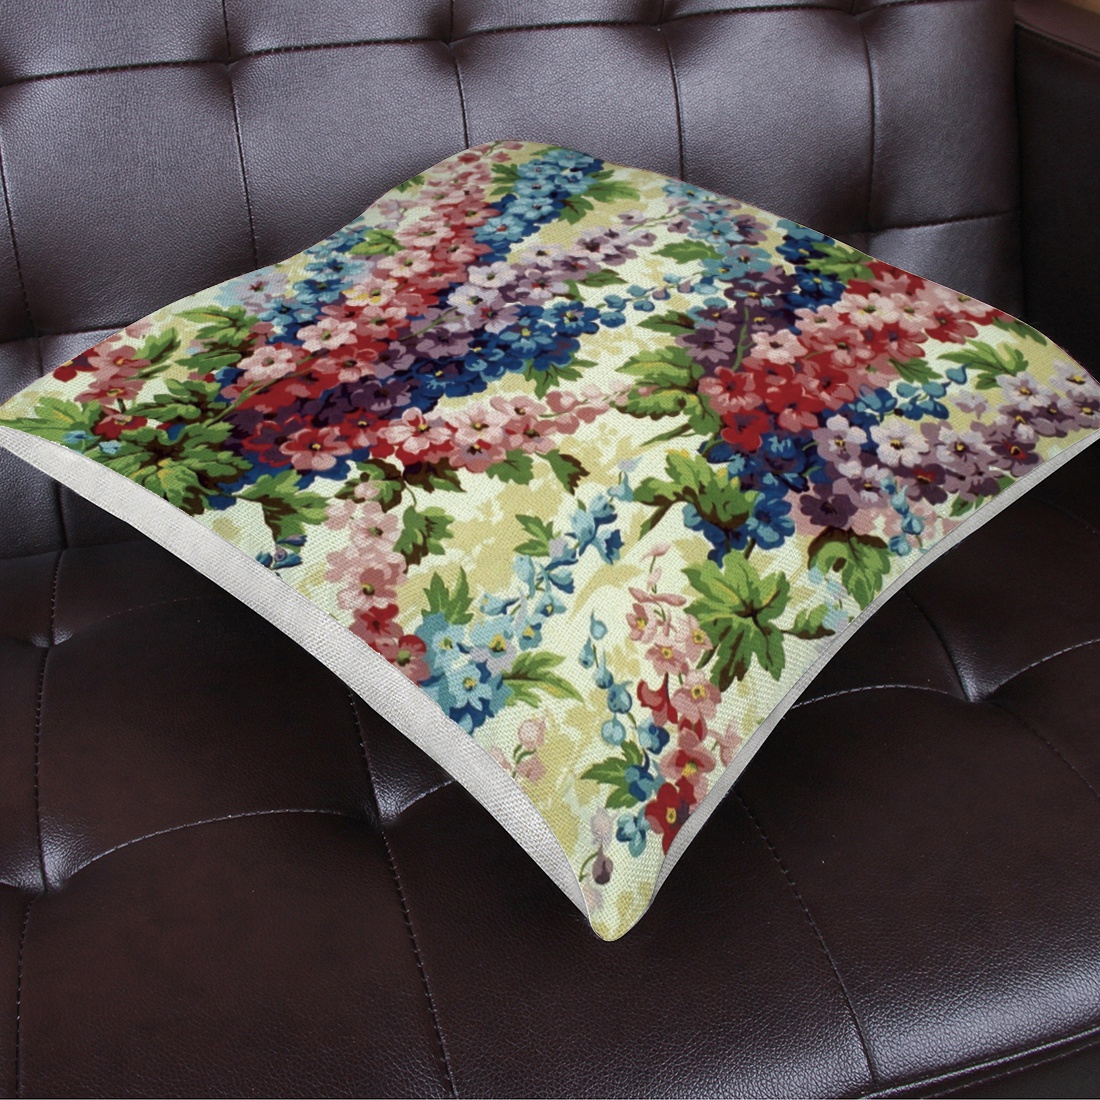 Cotton Linen Cushion Covers Decorative Flowers Printed Pillowcase For Home Sofa Office Chair Car Seat Throw Pillow Decoration